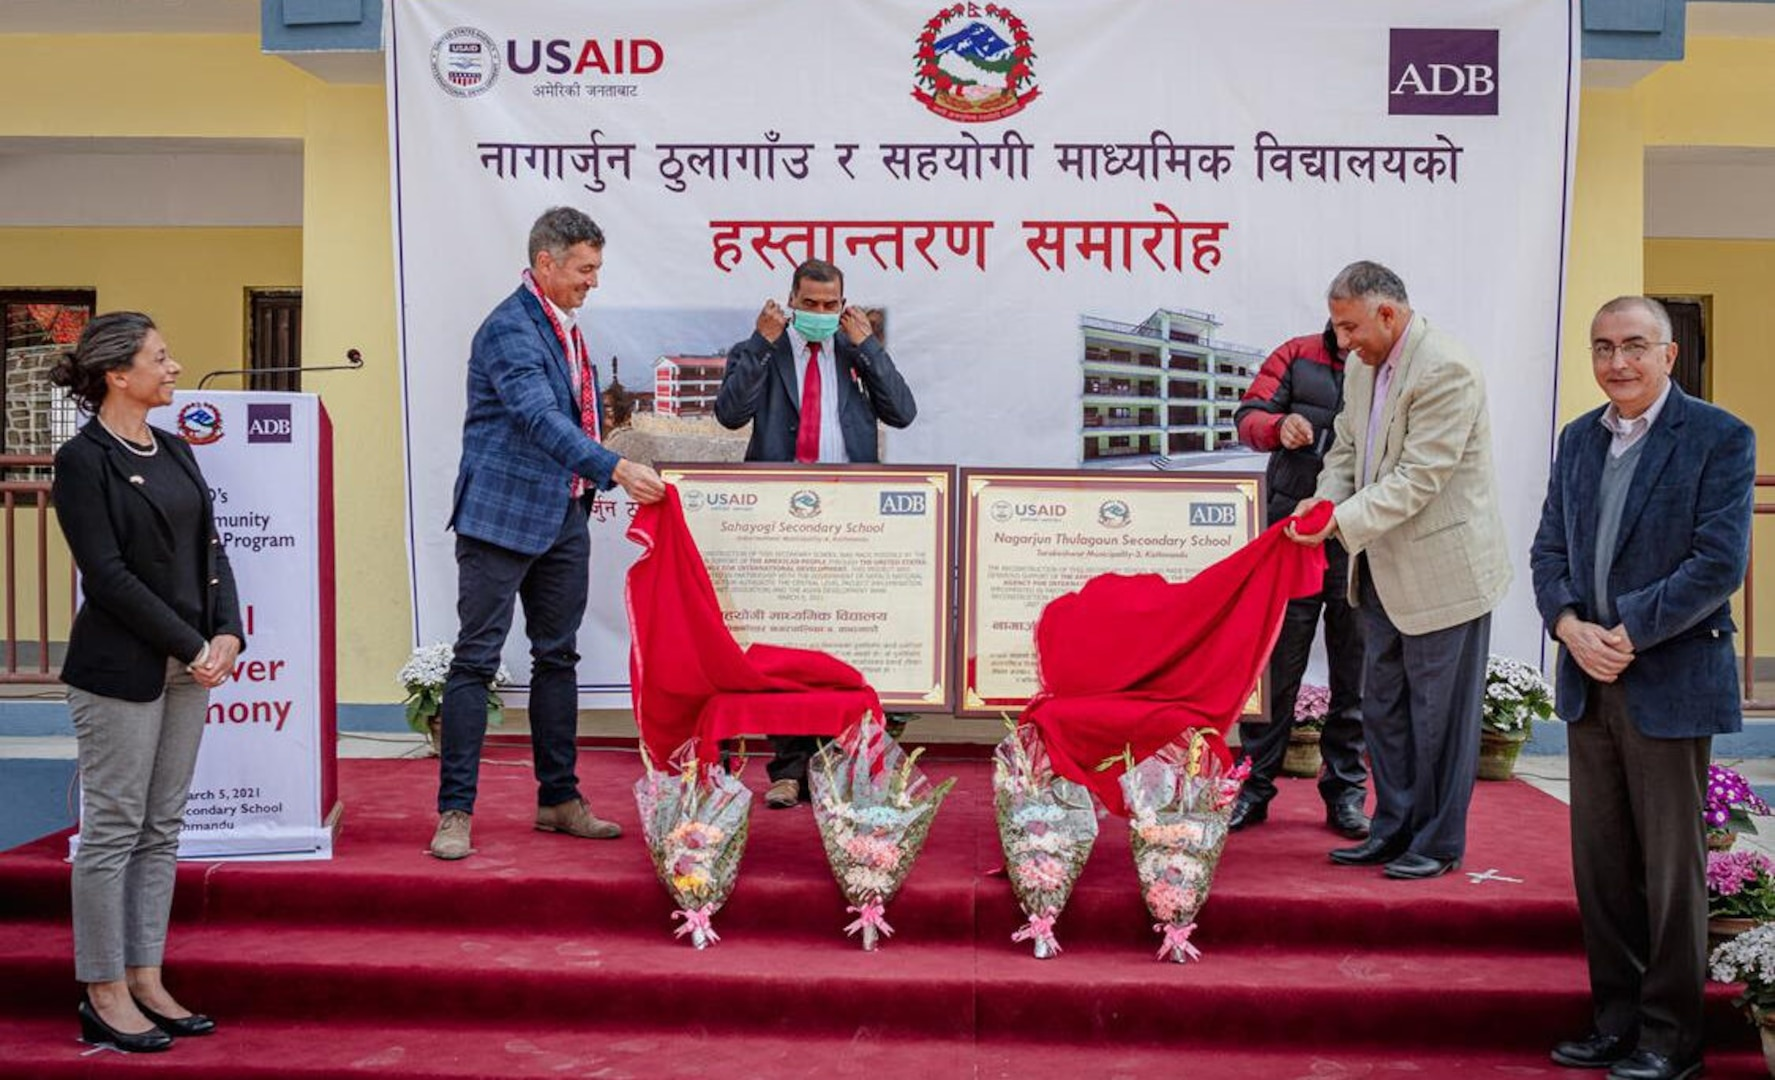 The U.S. in Partnership with ADB Completes Two Secondary Schools in Kathmandu